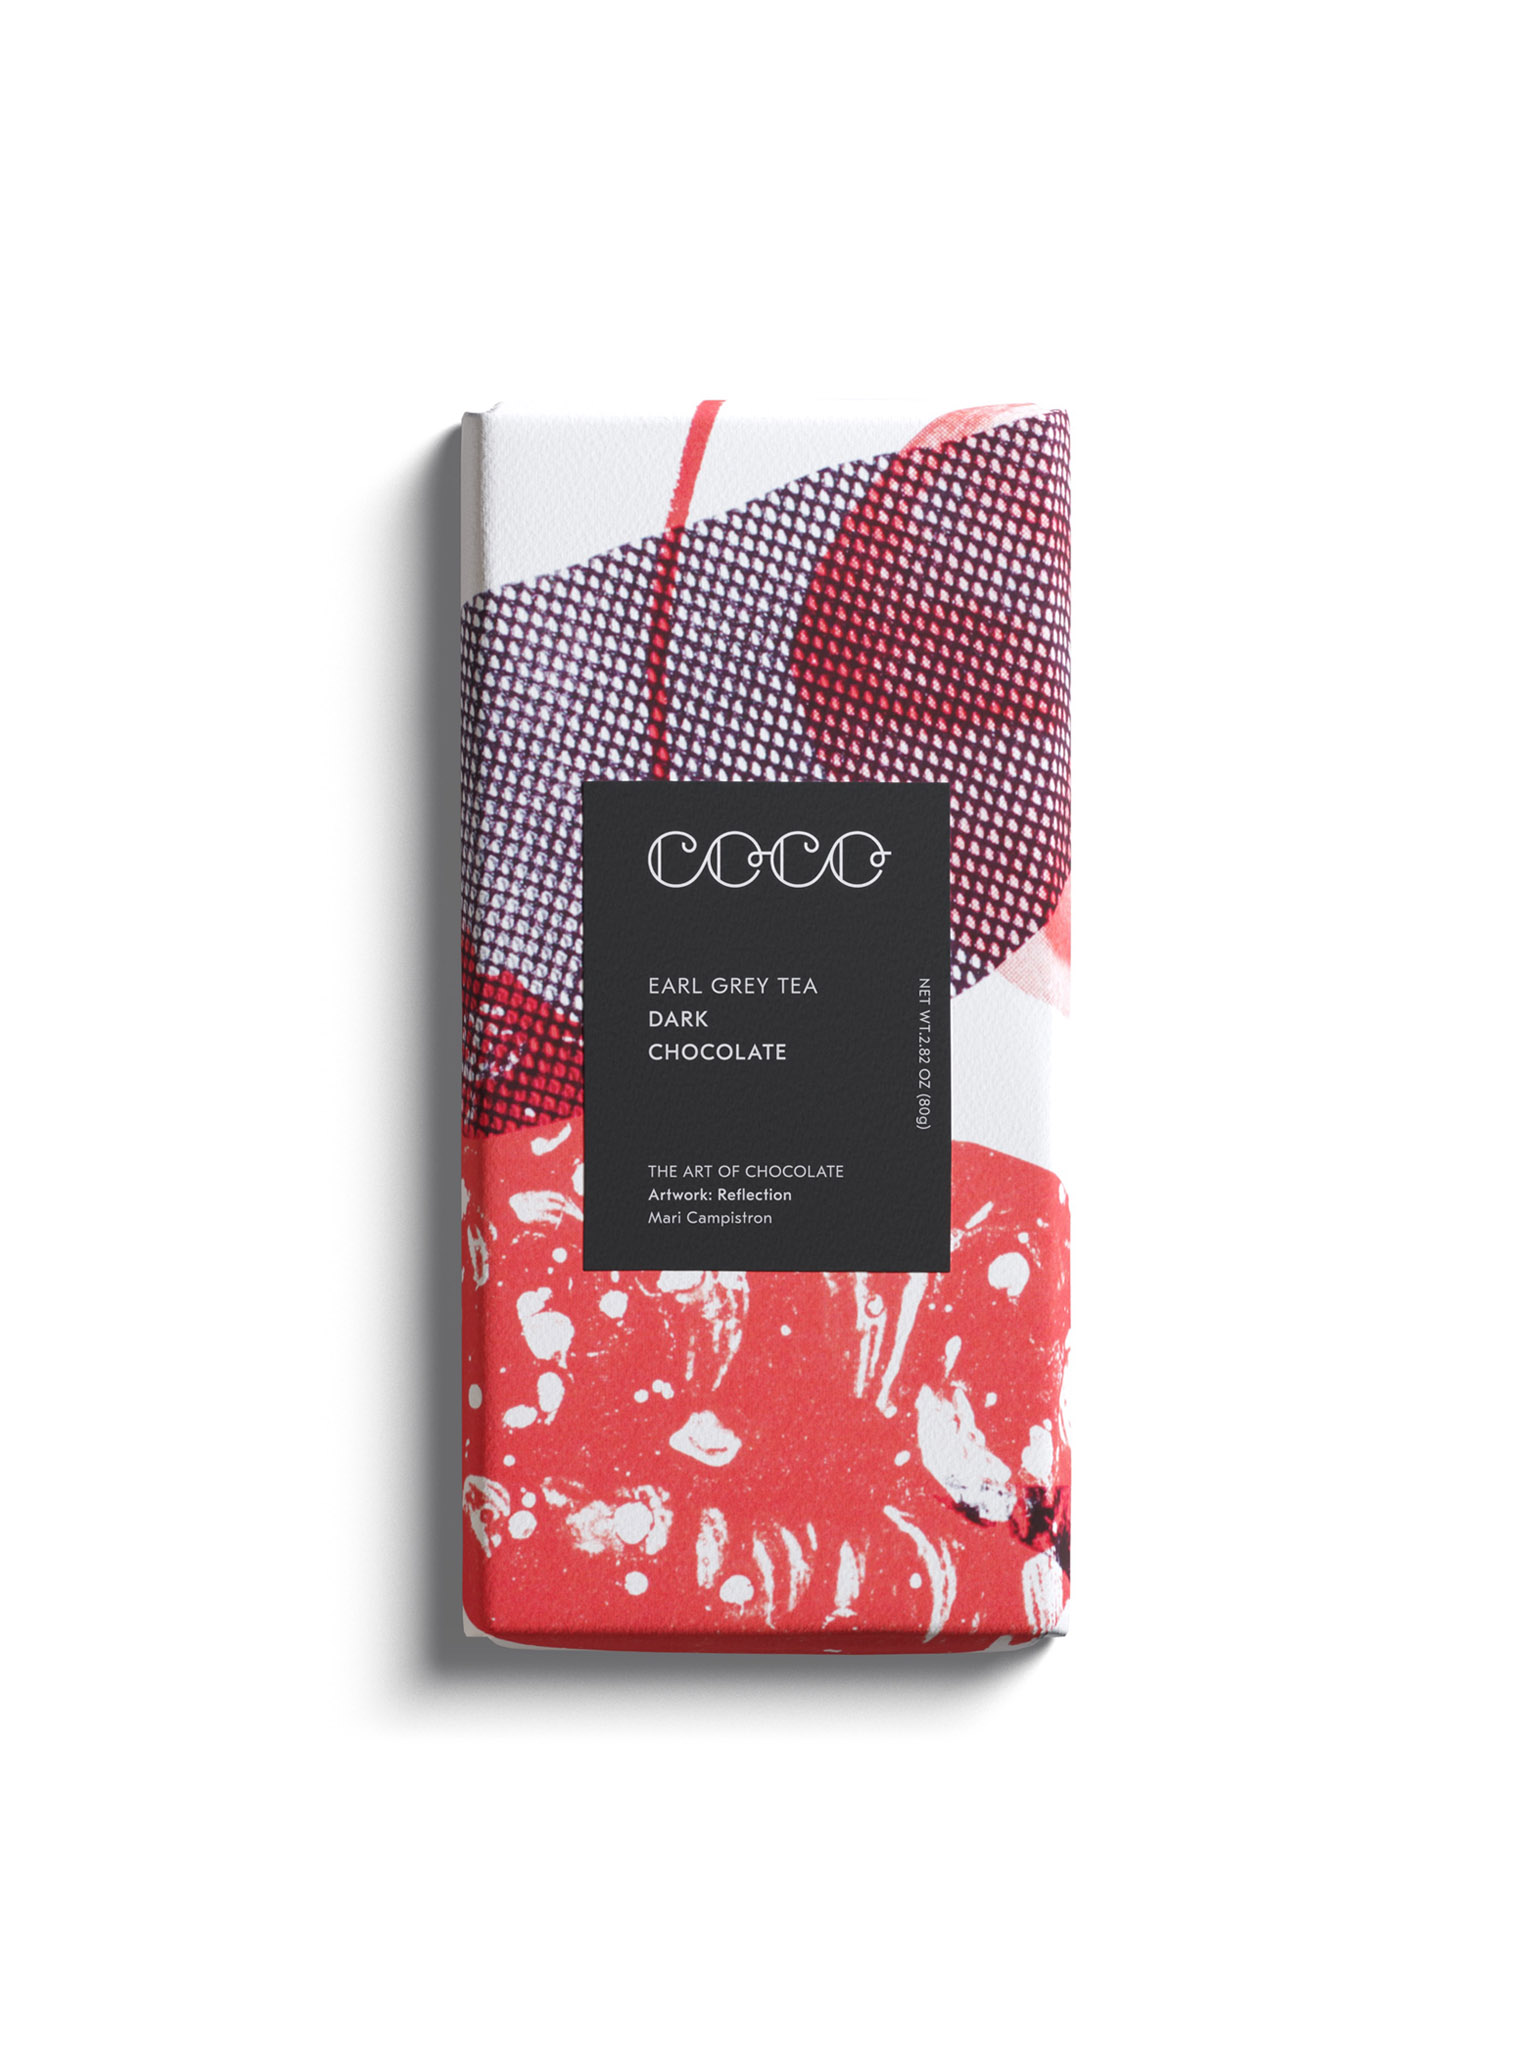 Coco Earl Grey Tea Dark Chocolate